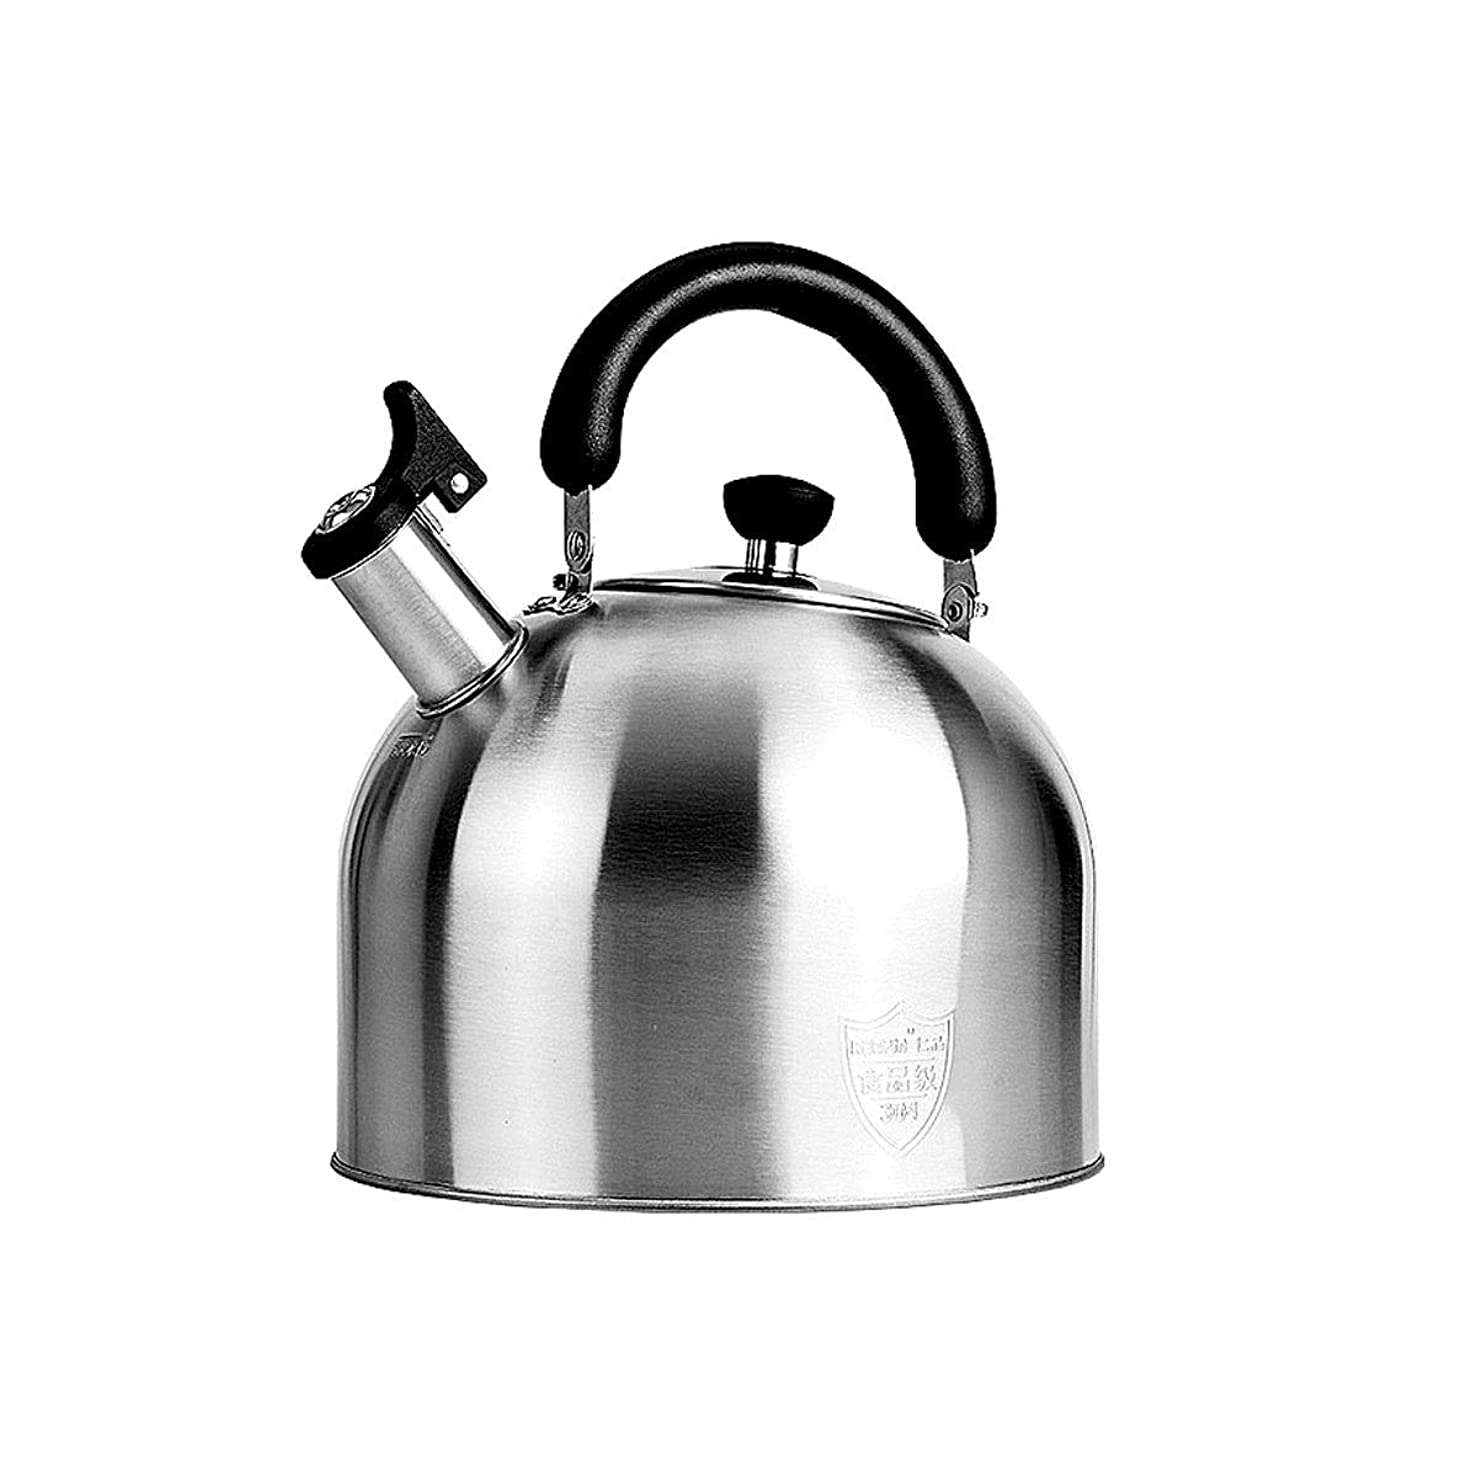 XIAONINGMENG Large-capacity Kettle, 304 Stainless Steel Kettle, Automatic Sounding Kettle, Gas Cooker Universal, 3~6L (Capacity : 6l)